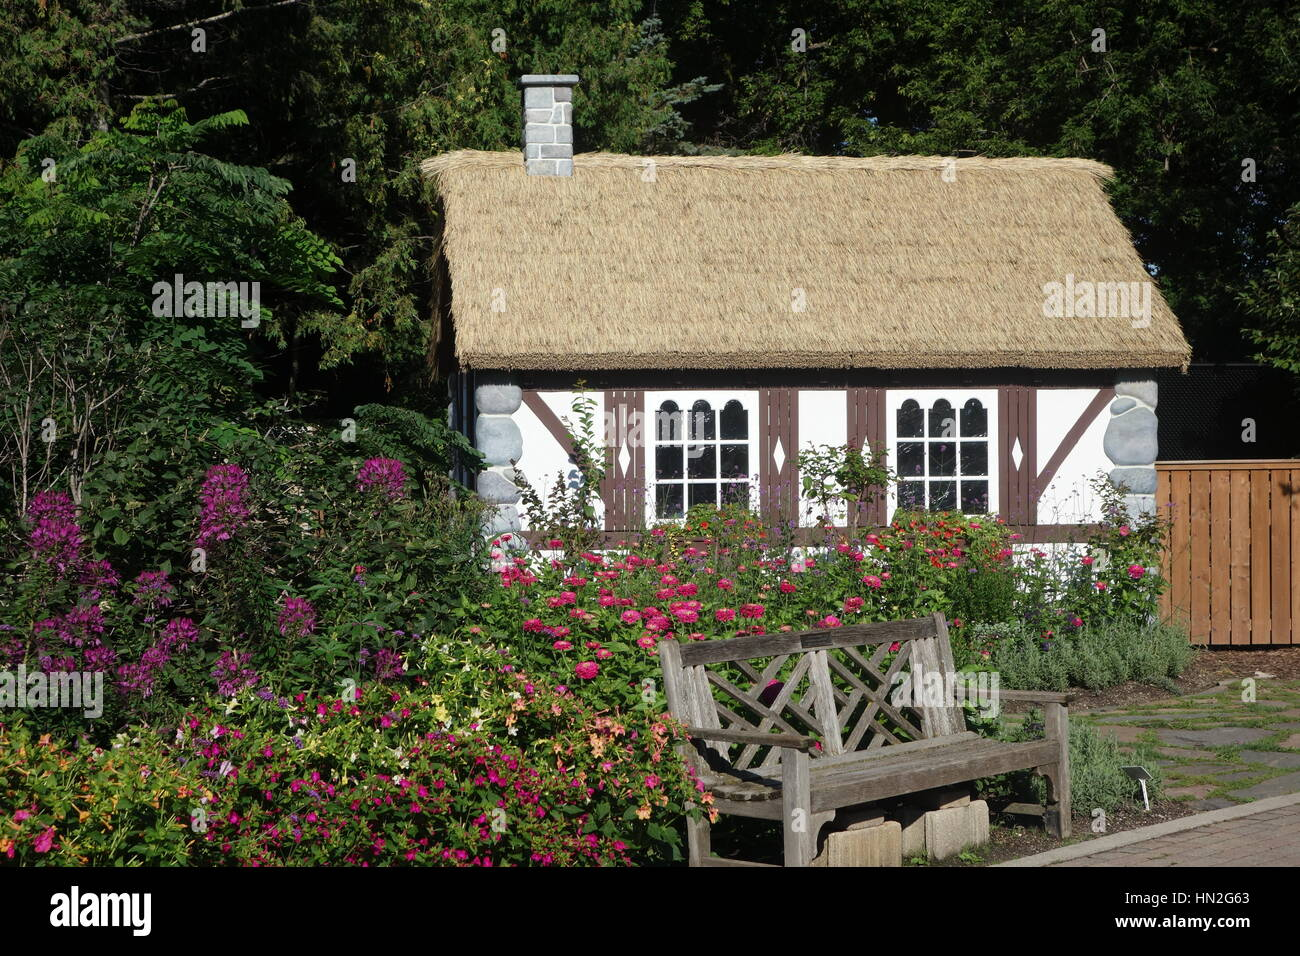 Tudor Style English Cottage With Thatch Roof In Garden